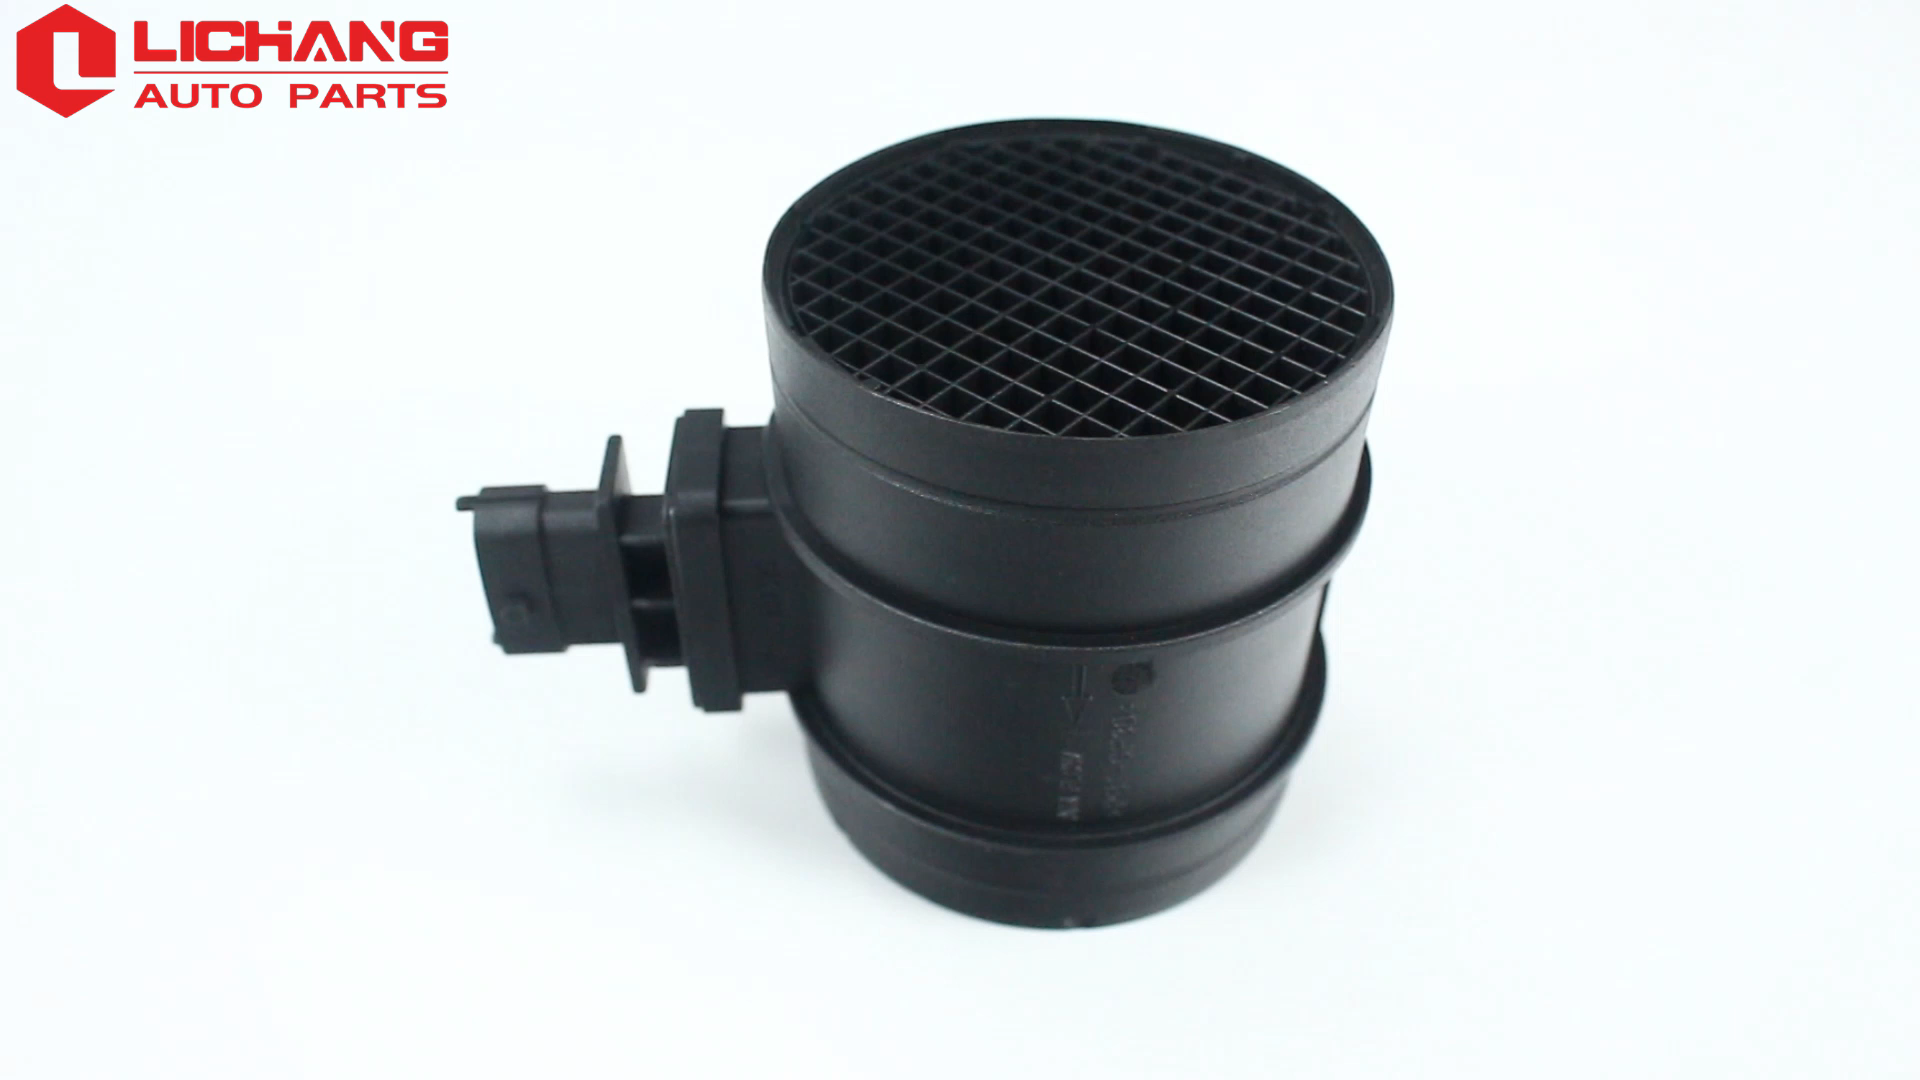 High Quality Mass Air Flow Sensor MAF for Greatwall Havel 3.8 0281002900